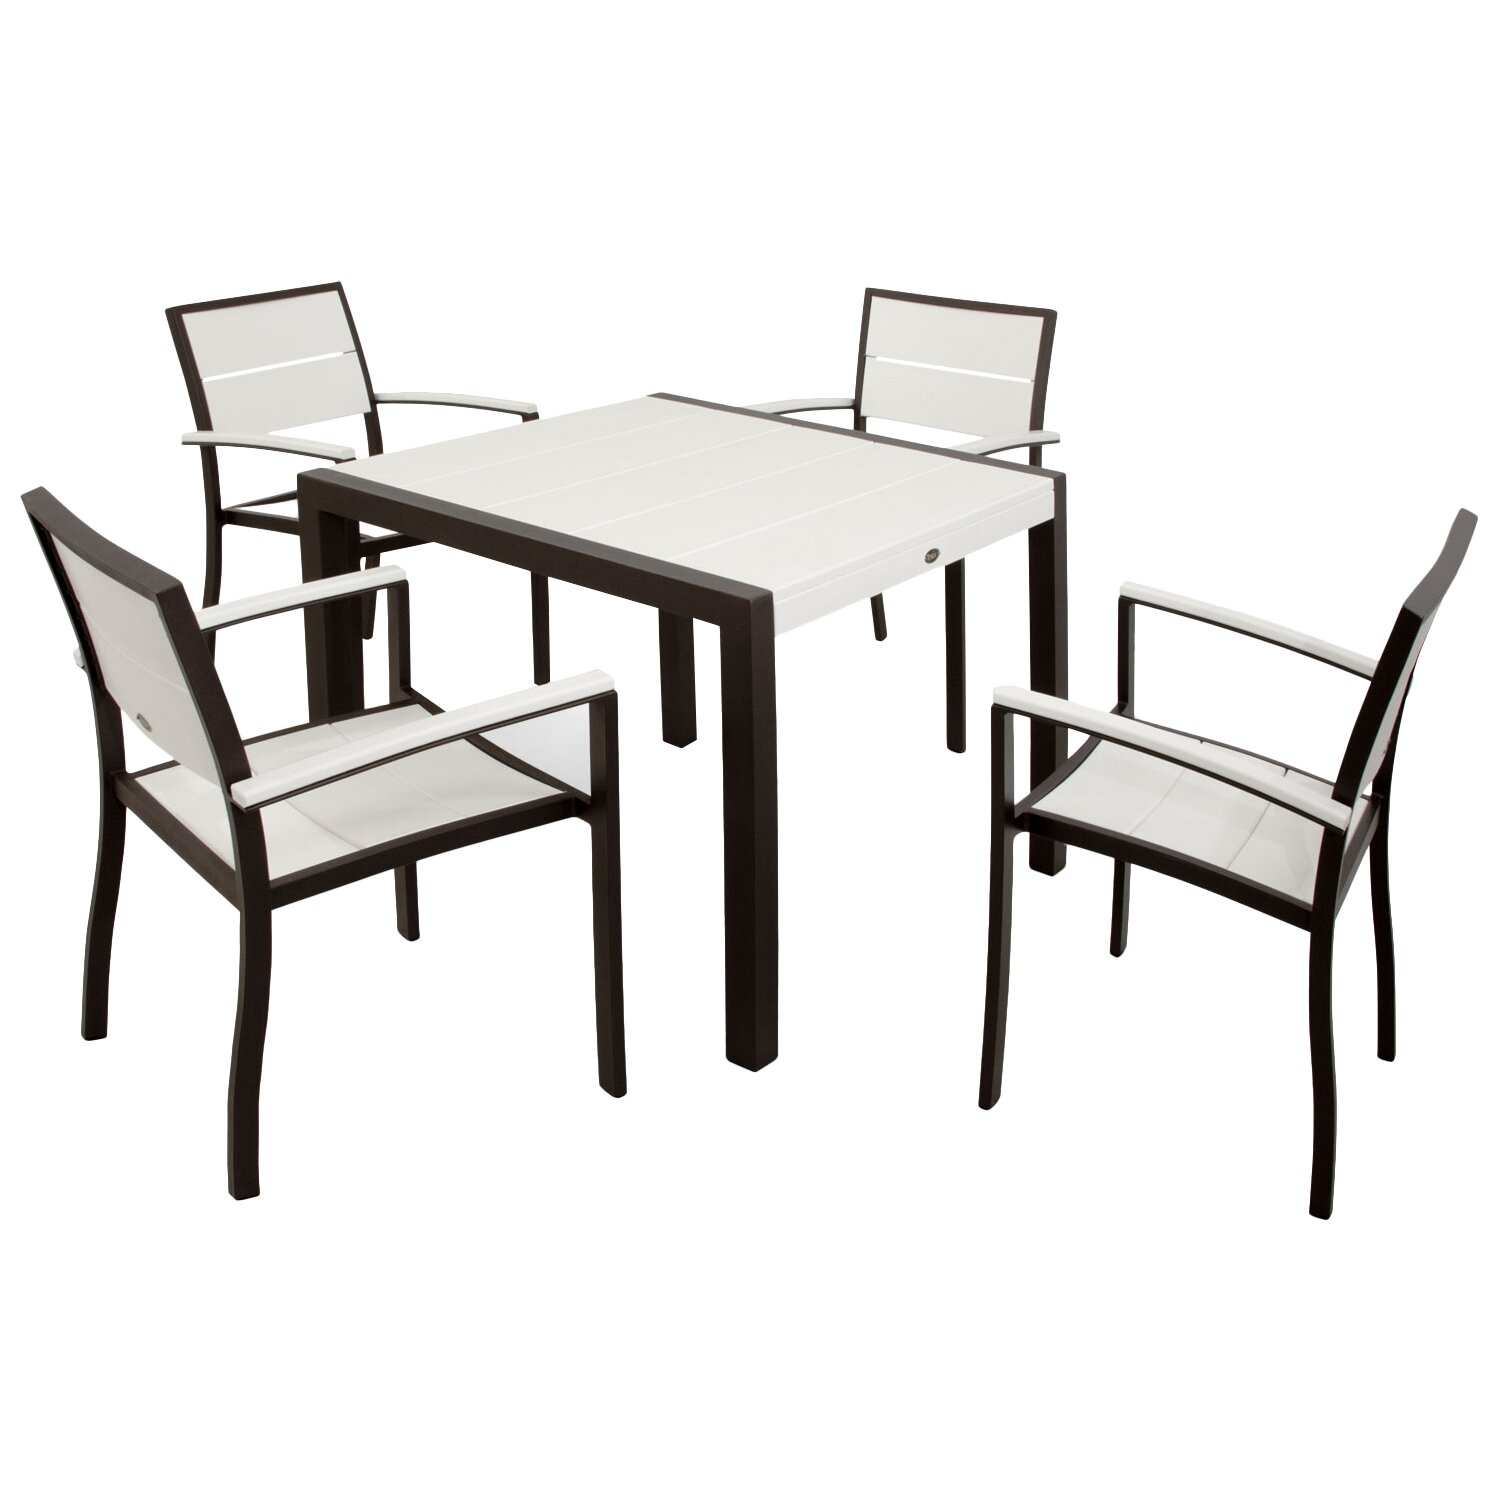 Brayden Studio Mazur Outdoor 5 Piece Dining Set Wayfair